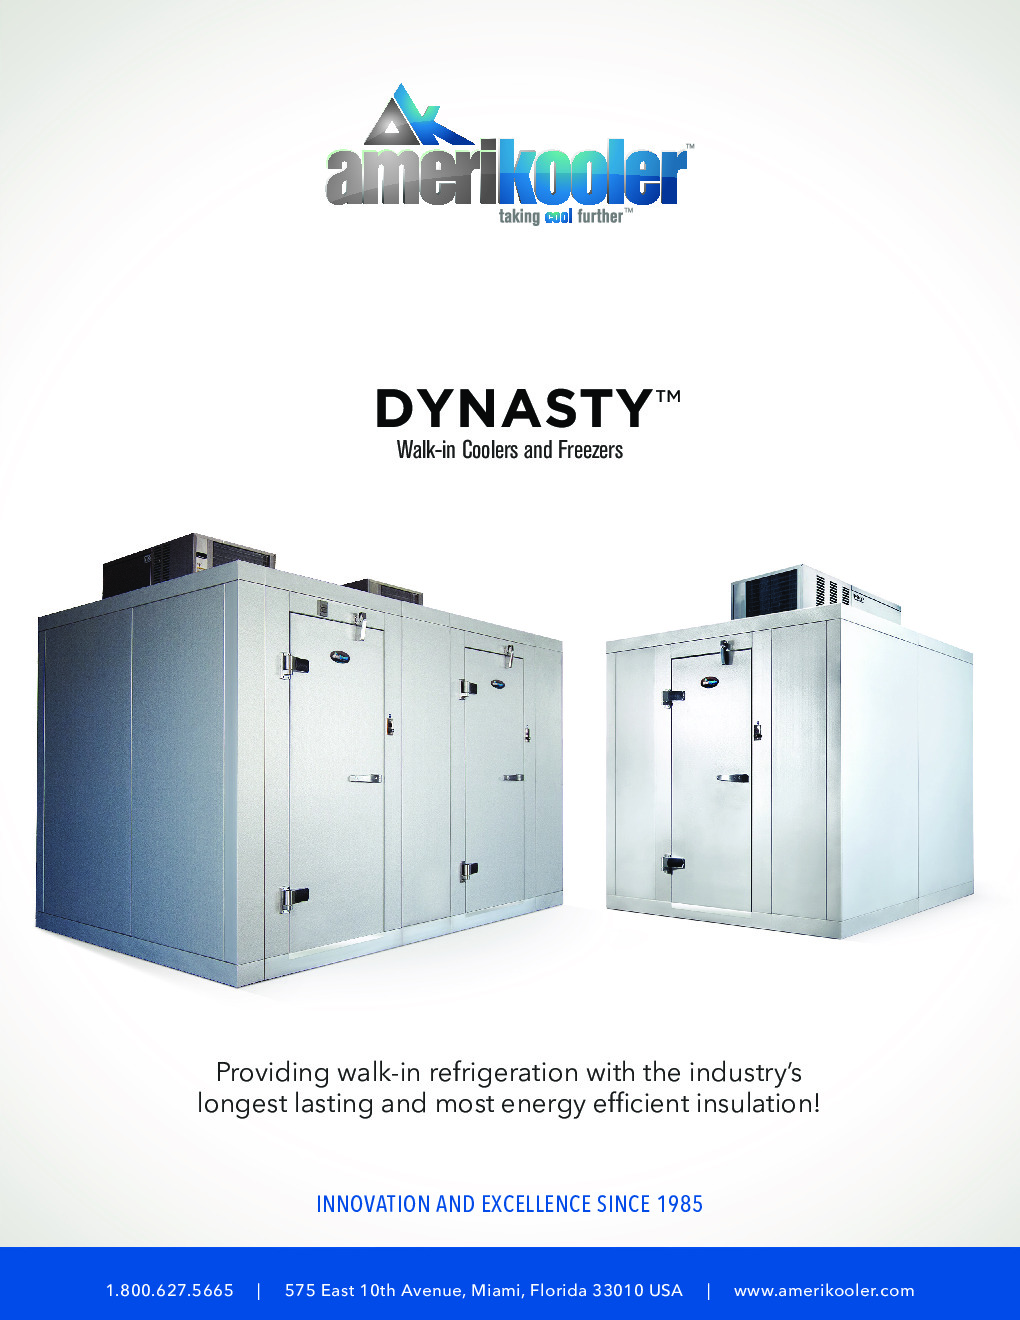 AmeriKooler DW061377F-5/8 Indoor 6' X 13' Walk-In, 8' L Cooler with Floor and 5' L Freezer, Box Only